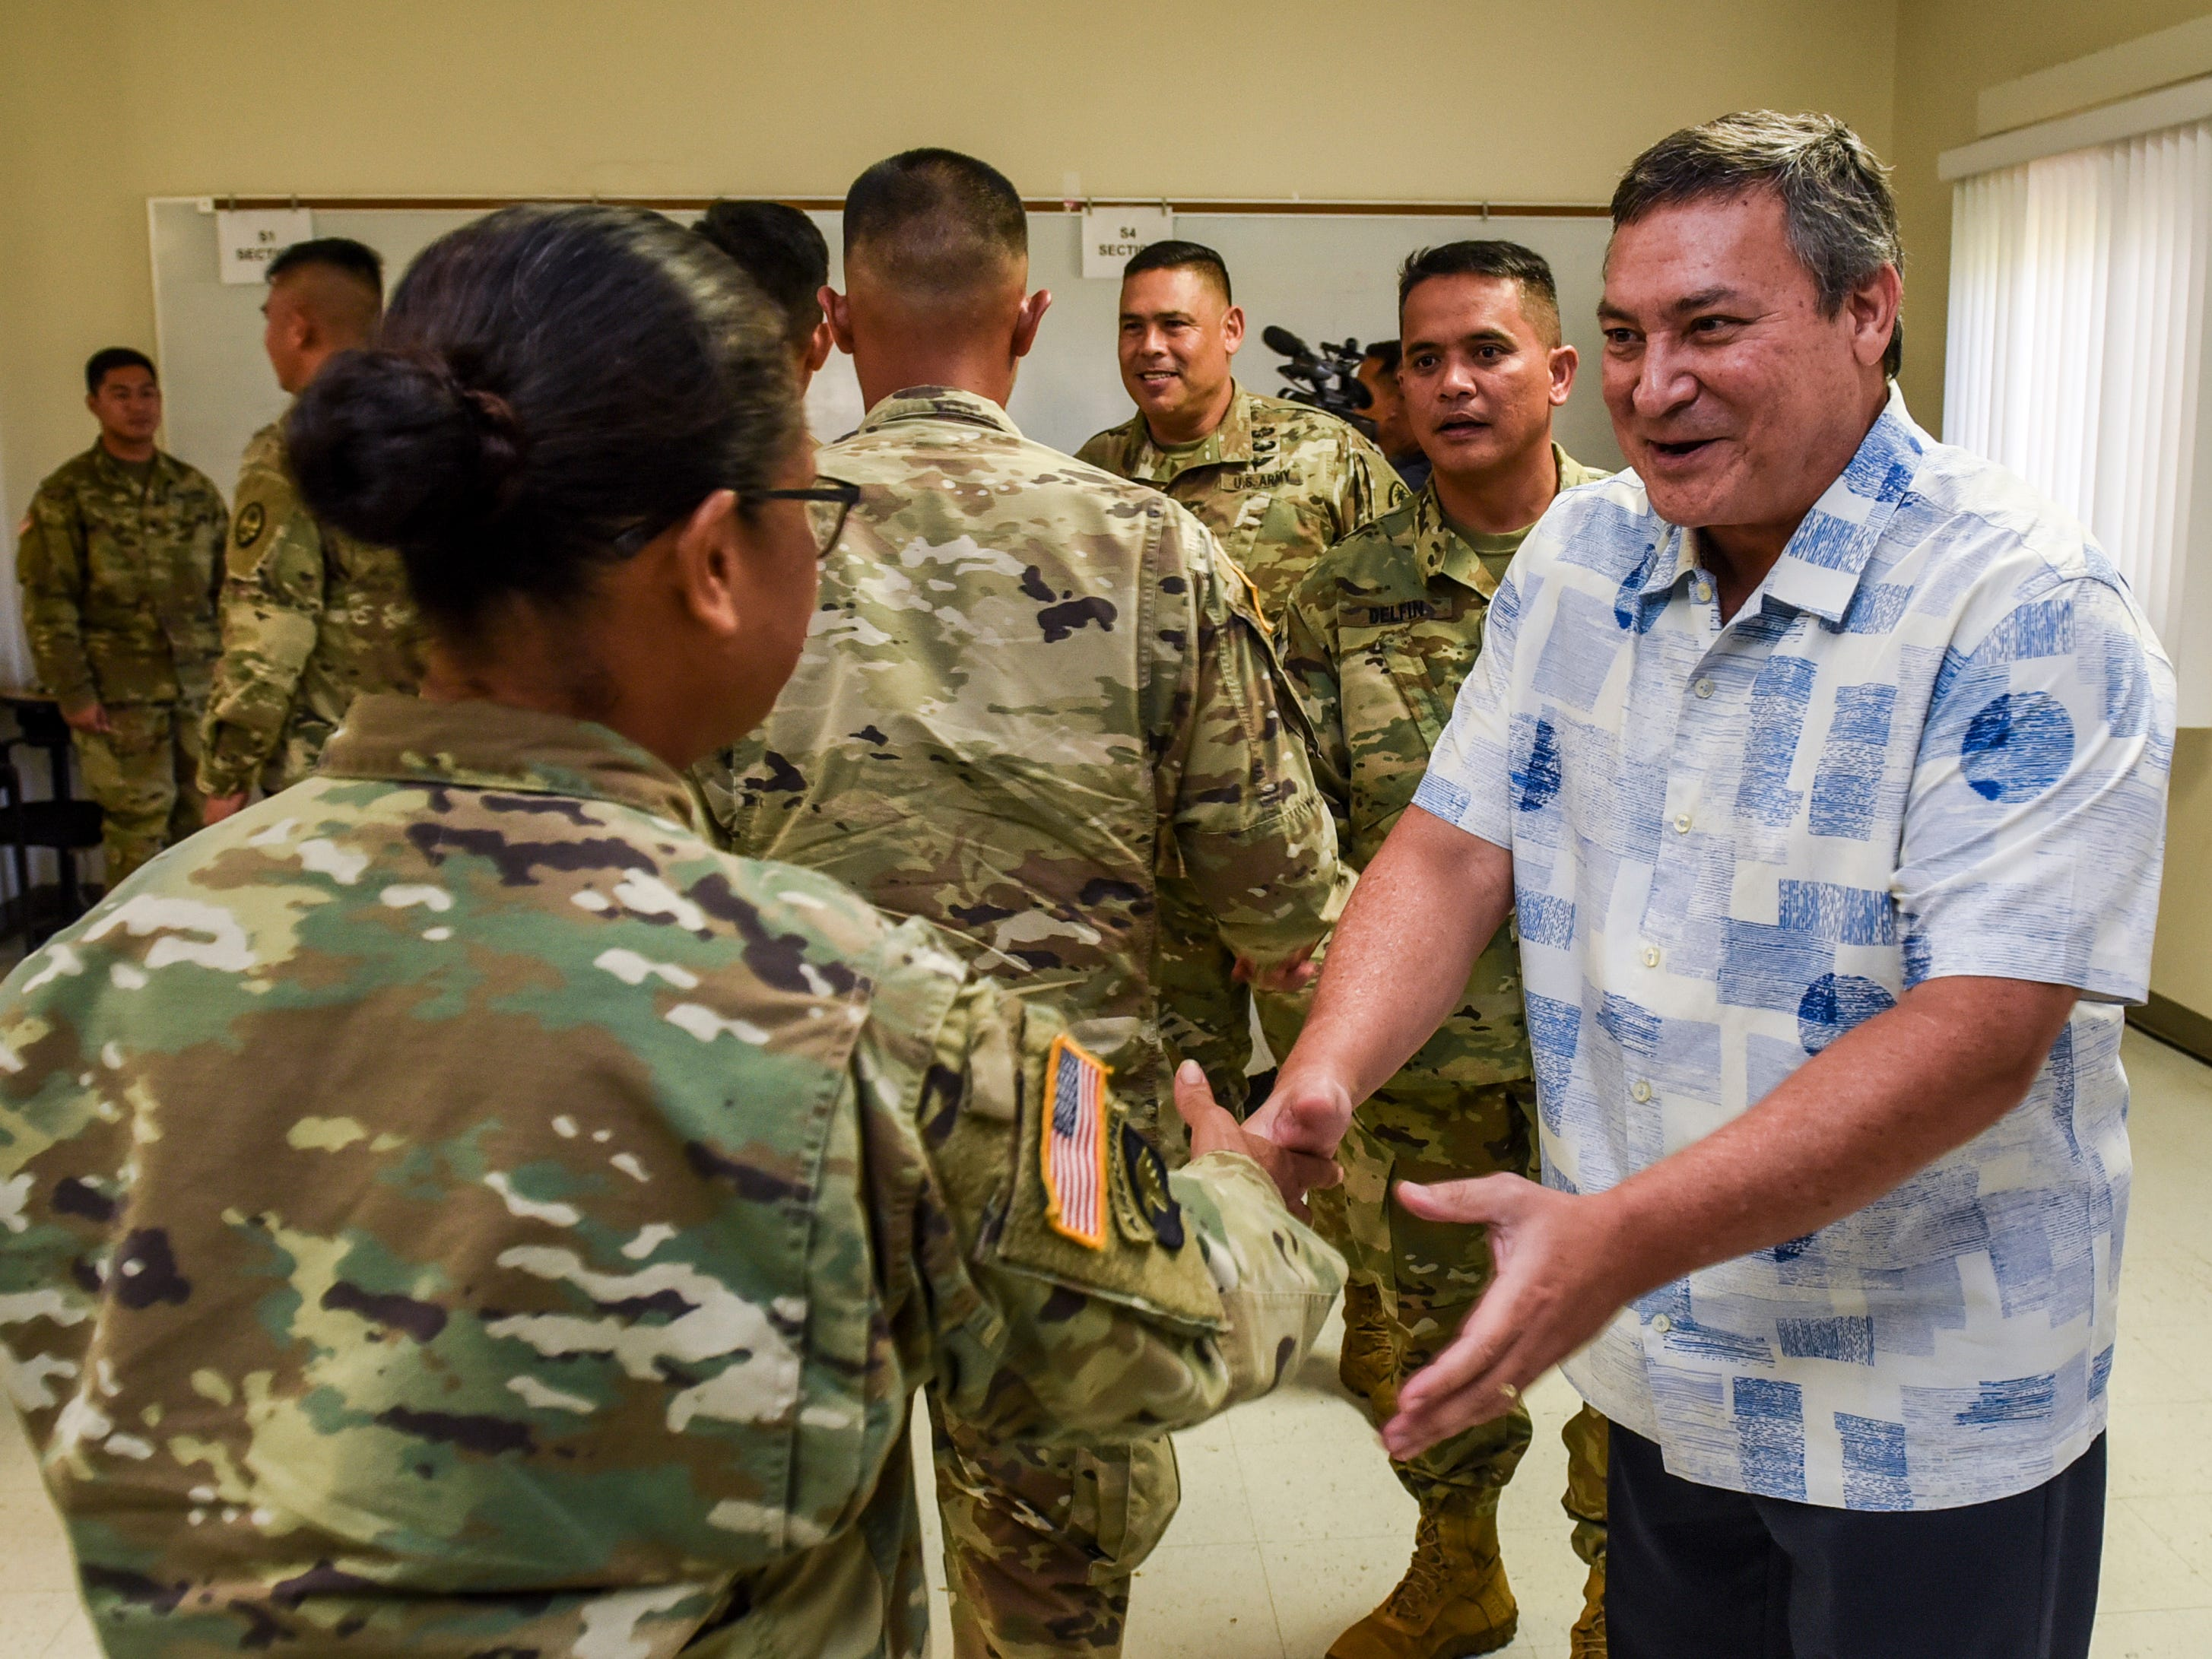 Gov. Eddie Calvo shakes hands with Guam Army National Guard soldiers during a sendoff ceremony at the Guard's Readiness Center in Barrigada on Wednesday, Oct. 31, 2018. The soldiers are slated to be deployed to aid in the recovery efforts of the island of Saipan in the Commonwealth of the Northern Mariana Islands, in the aftermath of Super Typhoon Yutu.